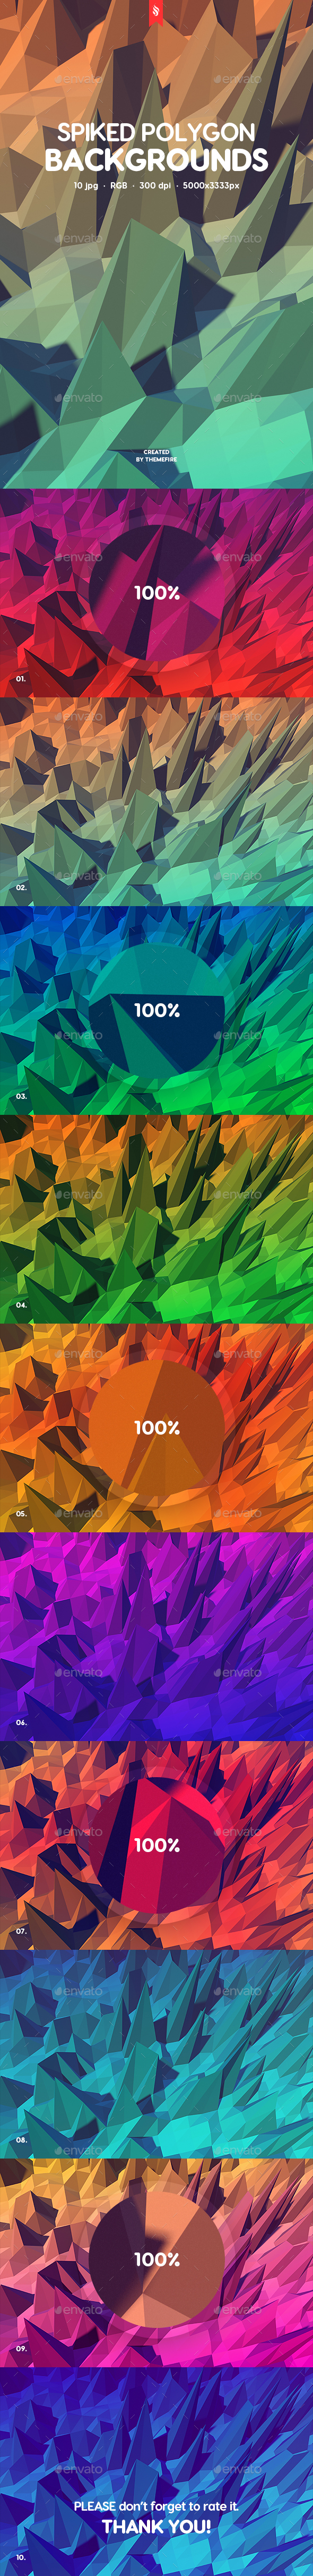 Spiked Polygon Backgrounds - Abstract Backgrounds